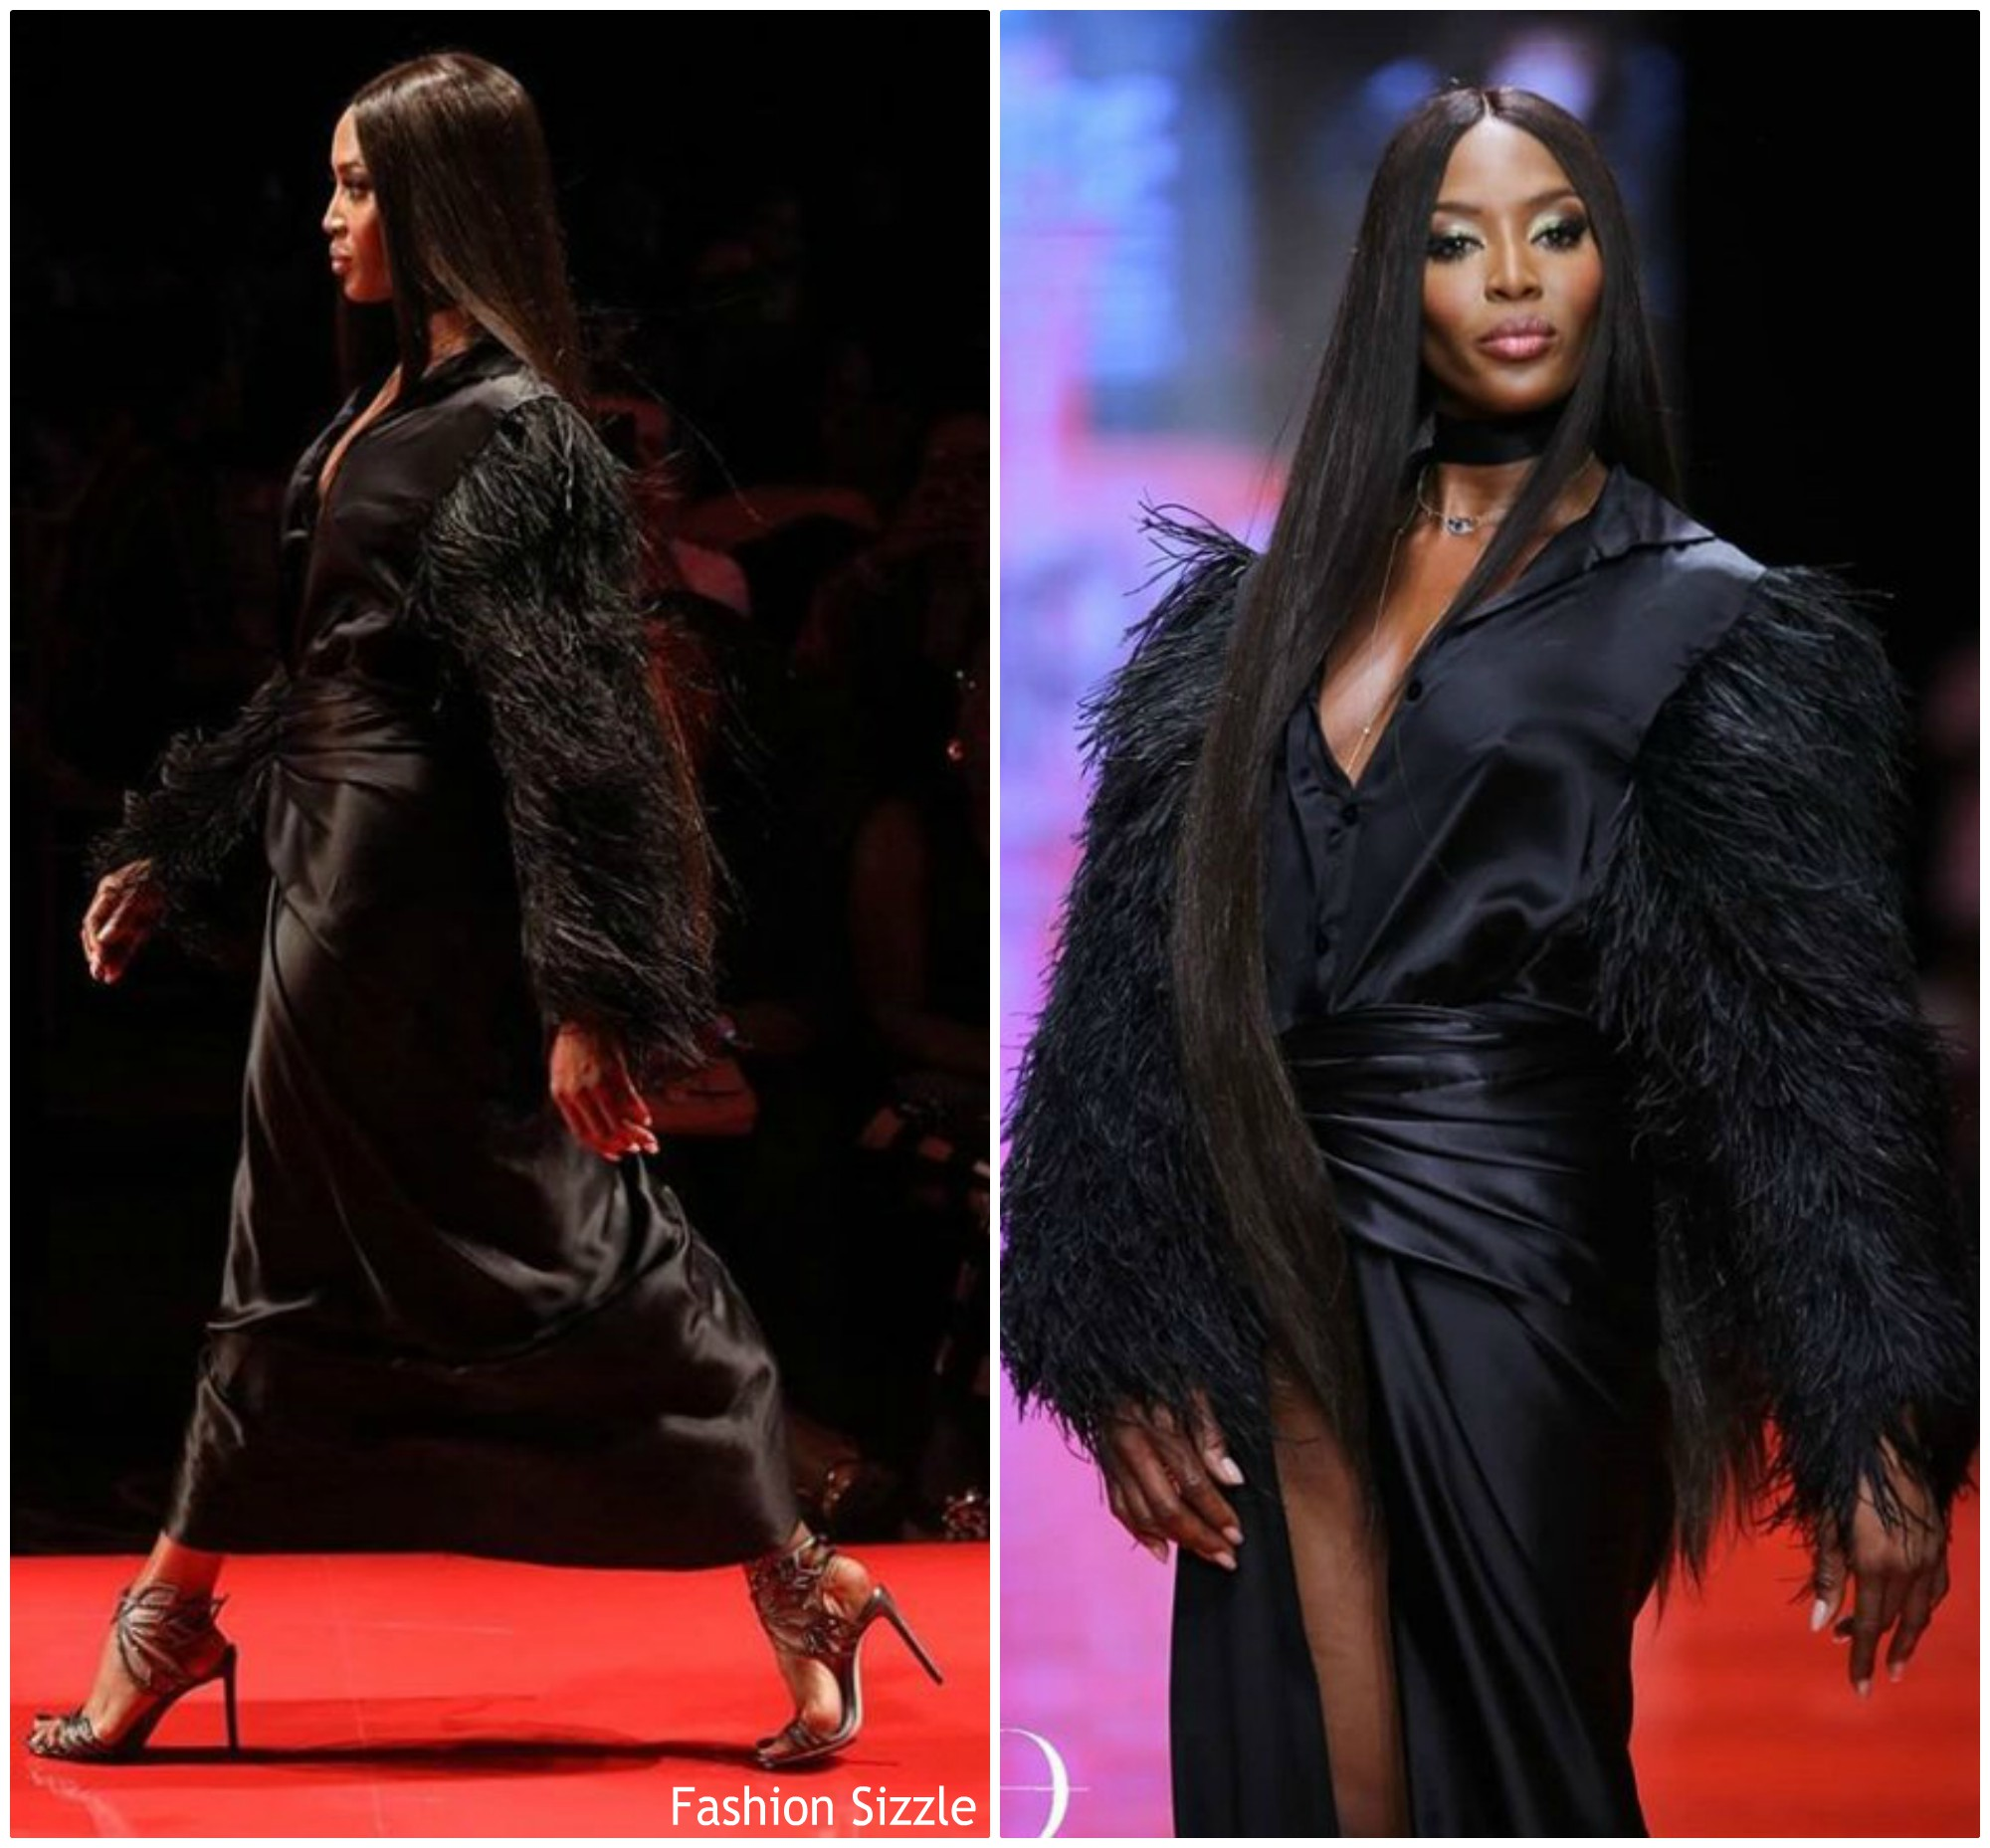 naomi-campbell-in-tiffany-amber-arise-fashion-week-in-lagos